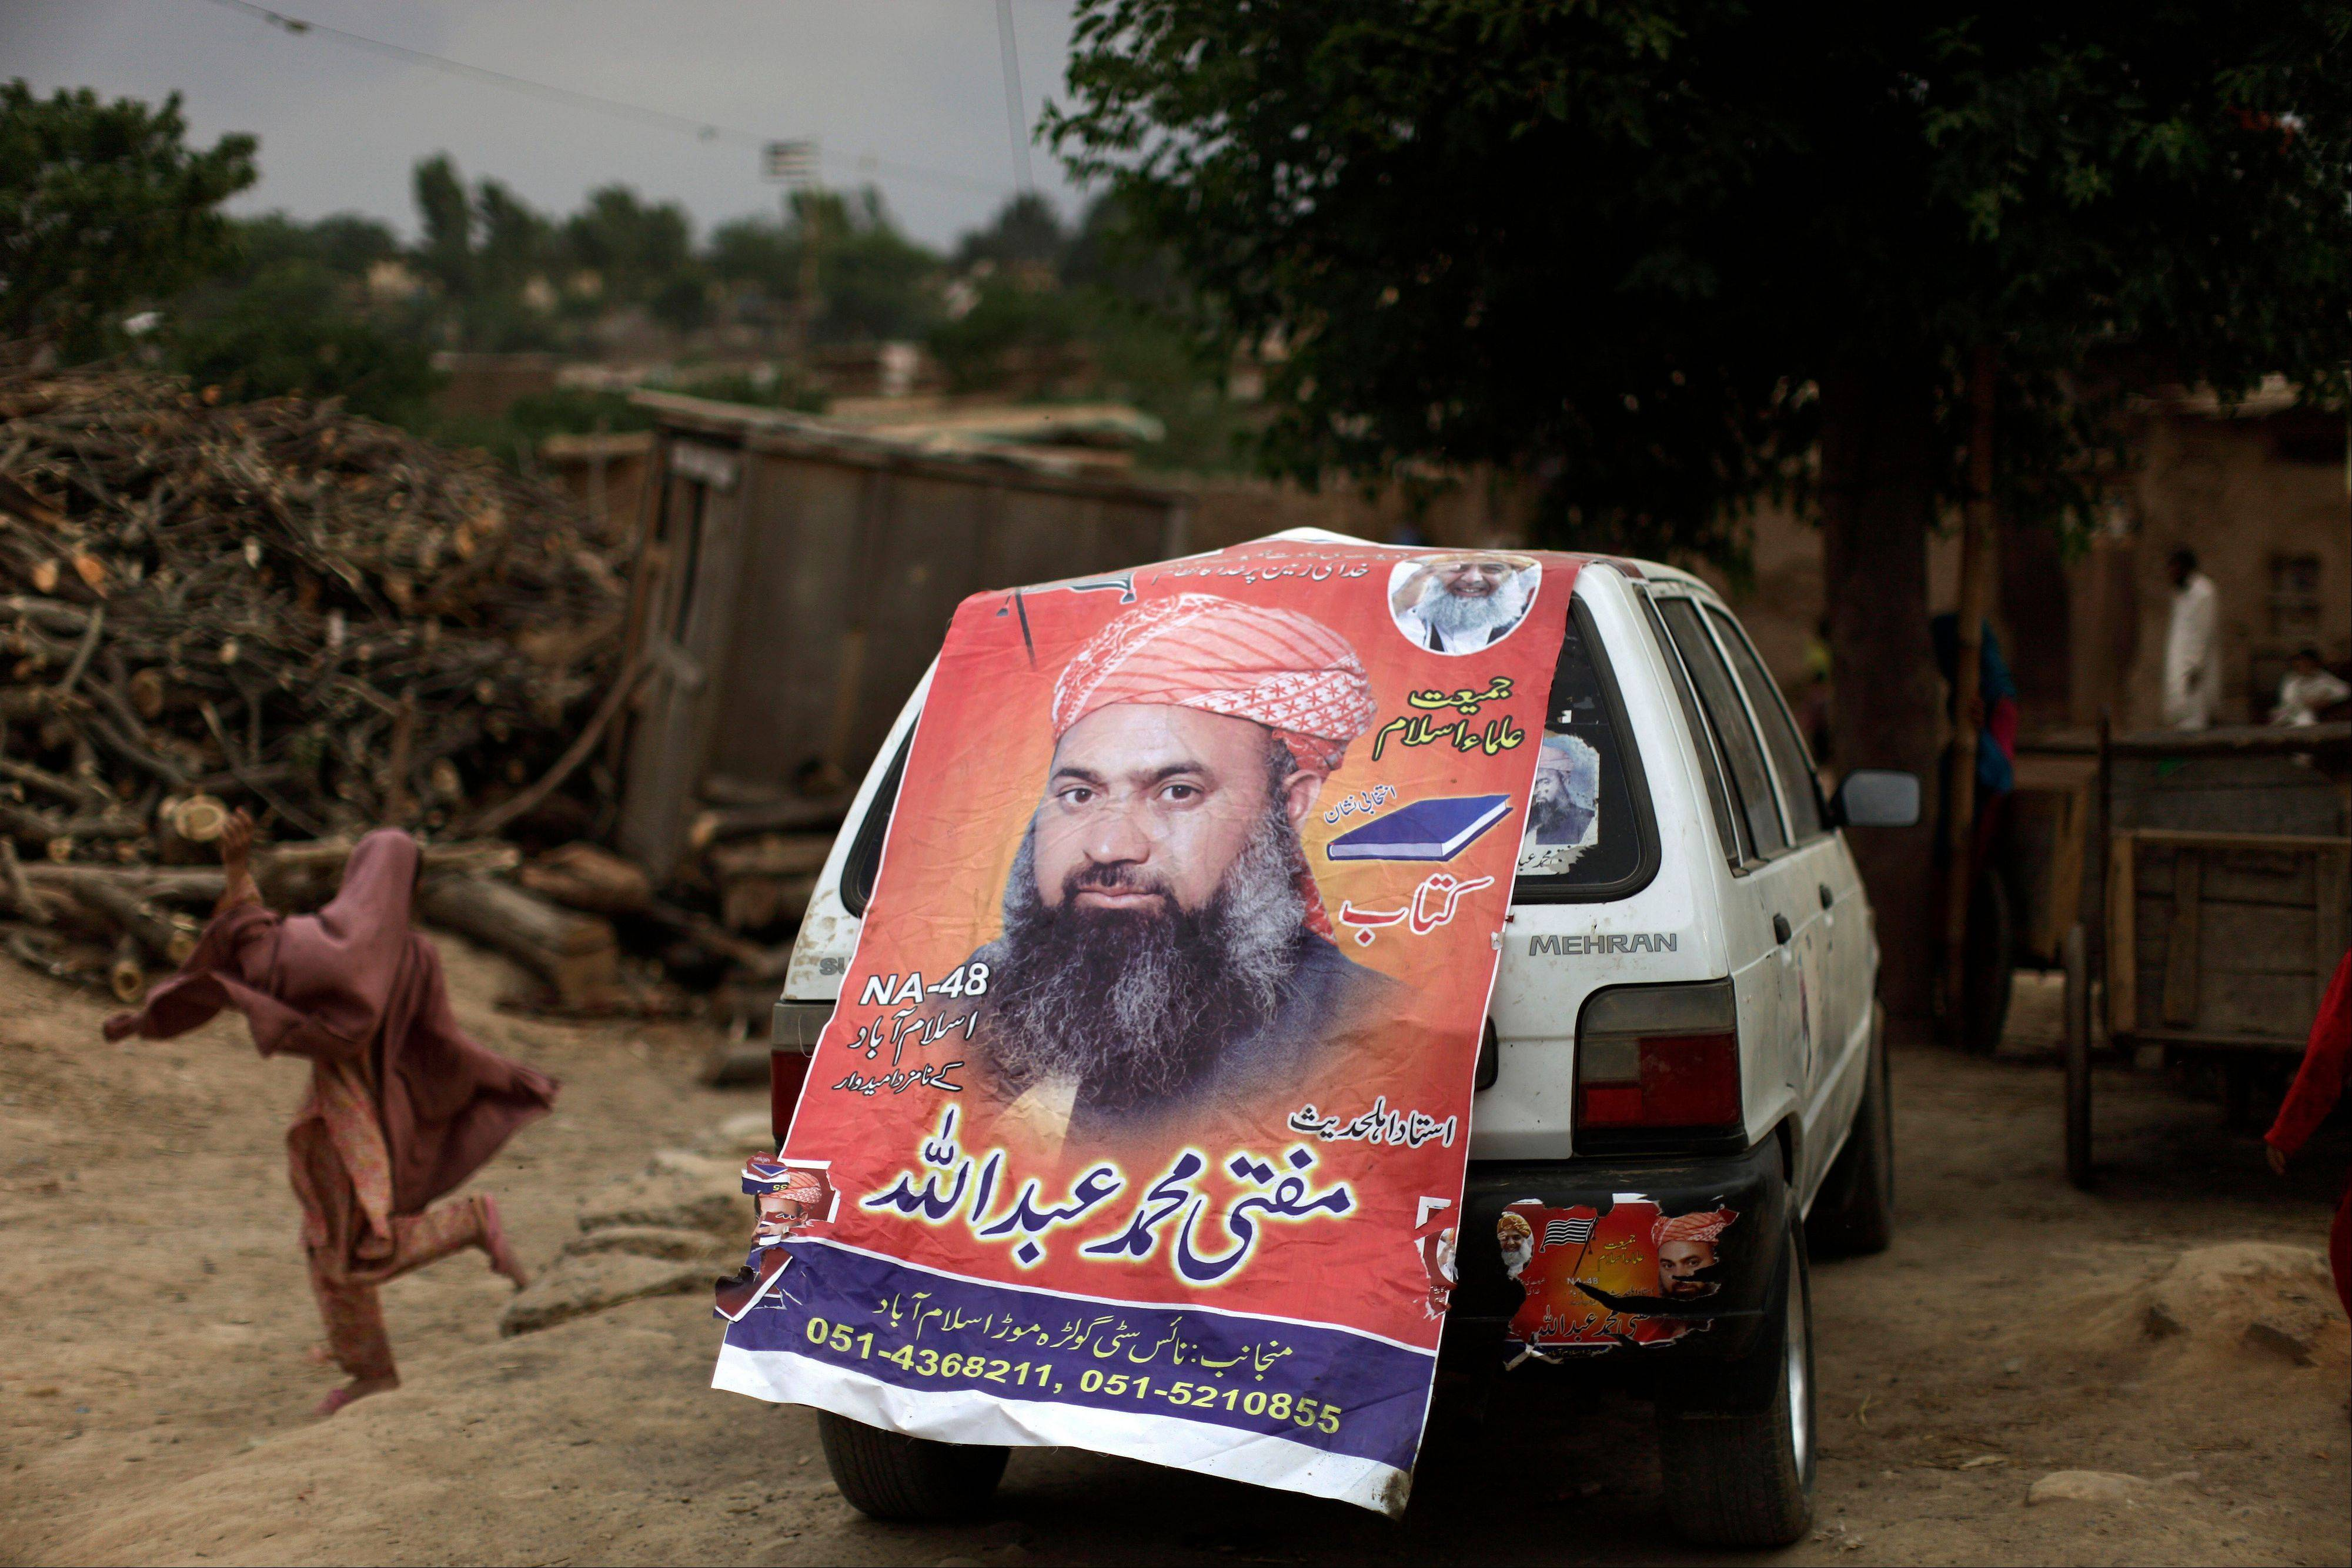 A Pakistani girl runs past a car Friday decorated with an election banner showing Mohammed Abdullah, a candidate of a pro-Taliban religious group Jamiat-e-Ulema Islam in a poor neighborhood on the outskirts of Islamabad, Pakistan.